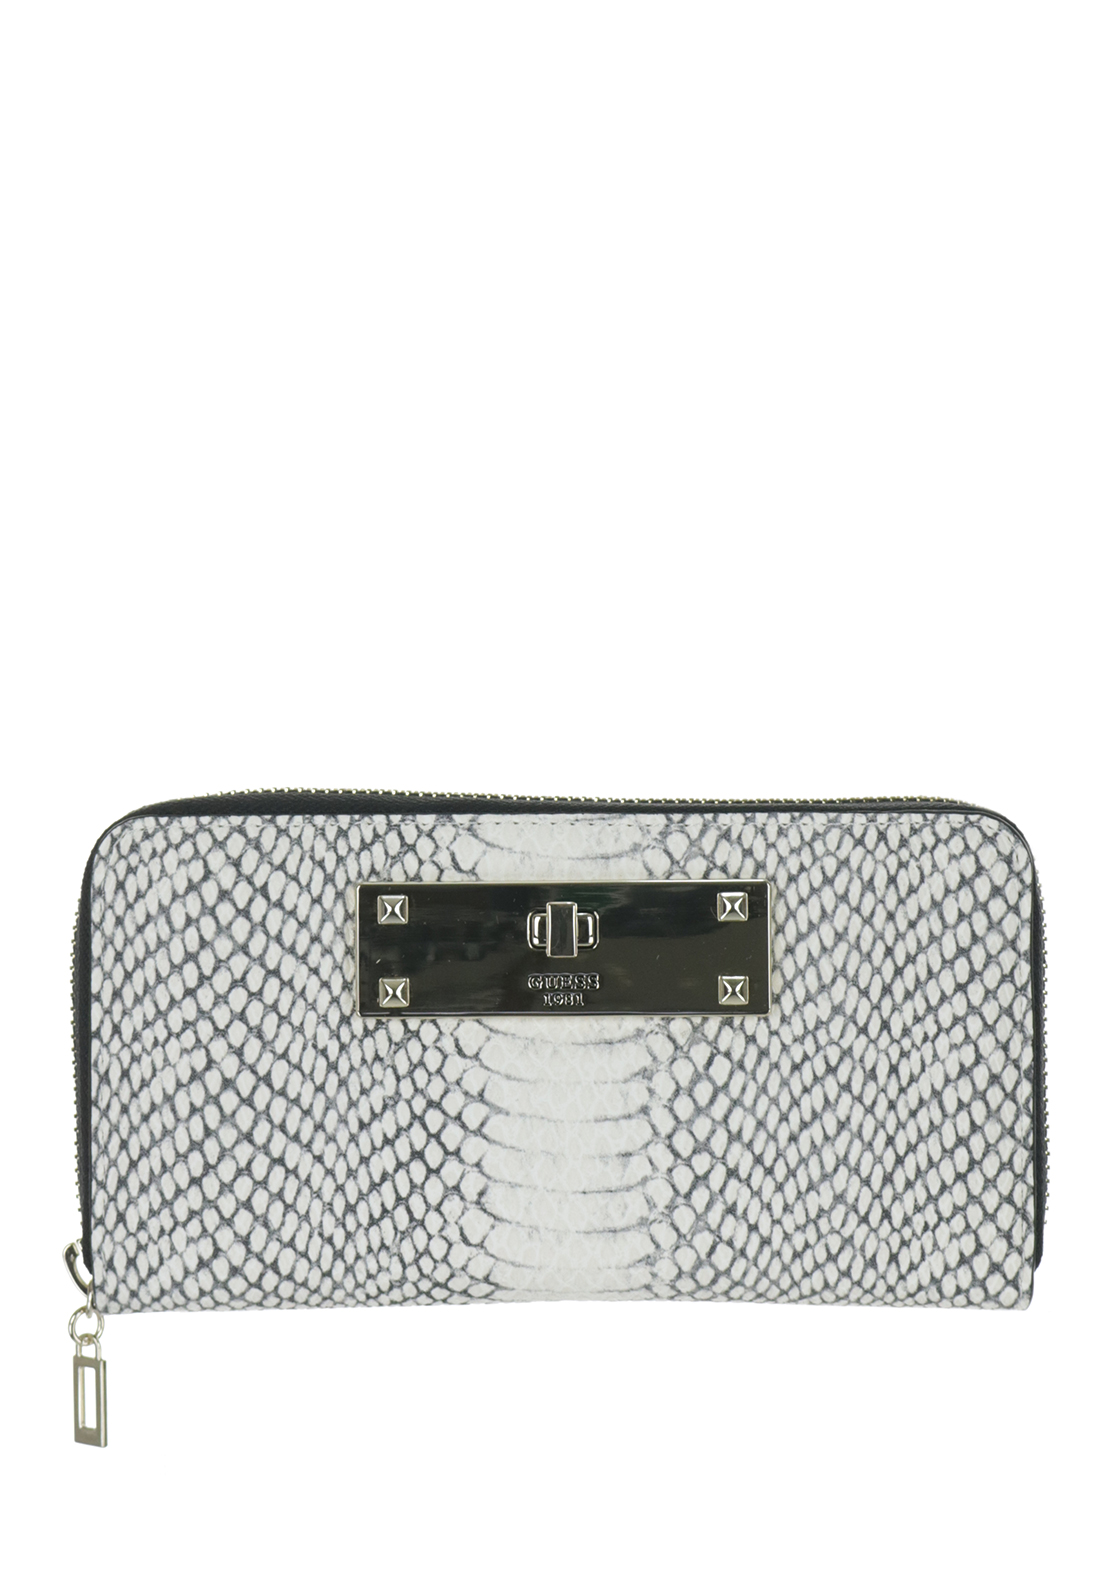 Guess Kyra Python Zip Around Medium Wristlet Purse, White